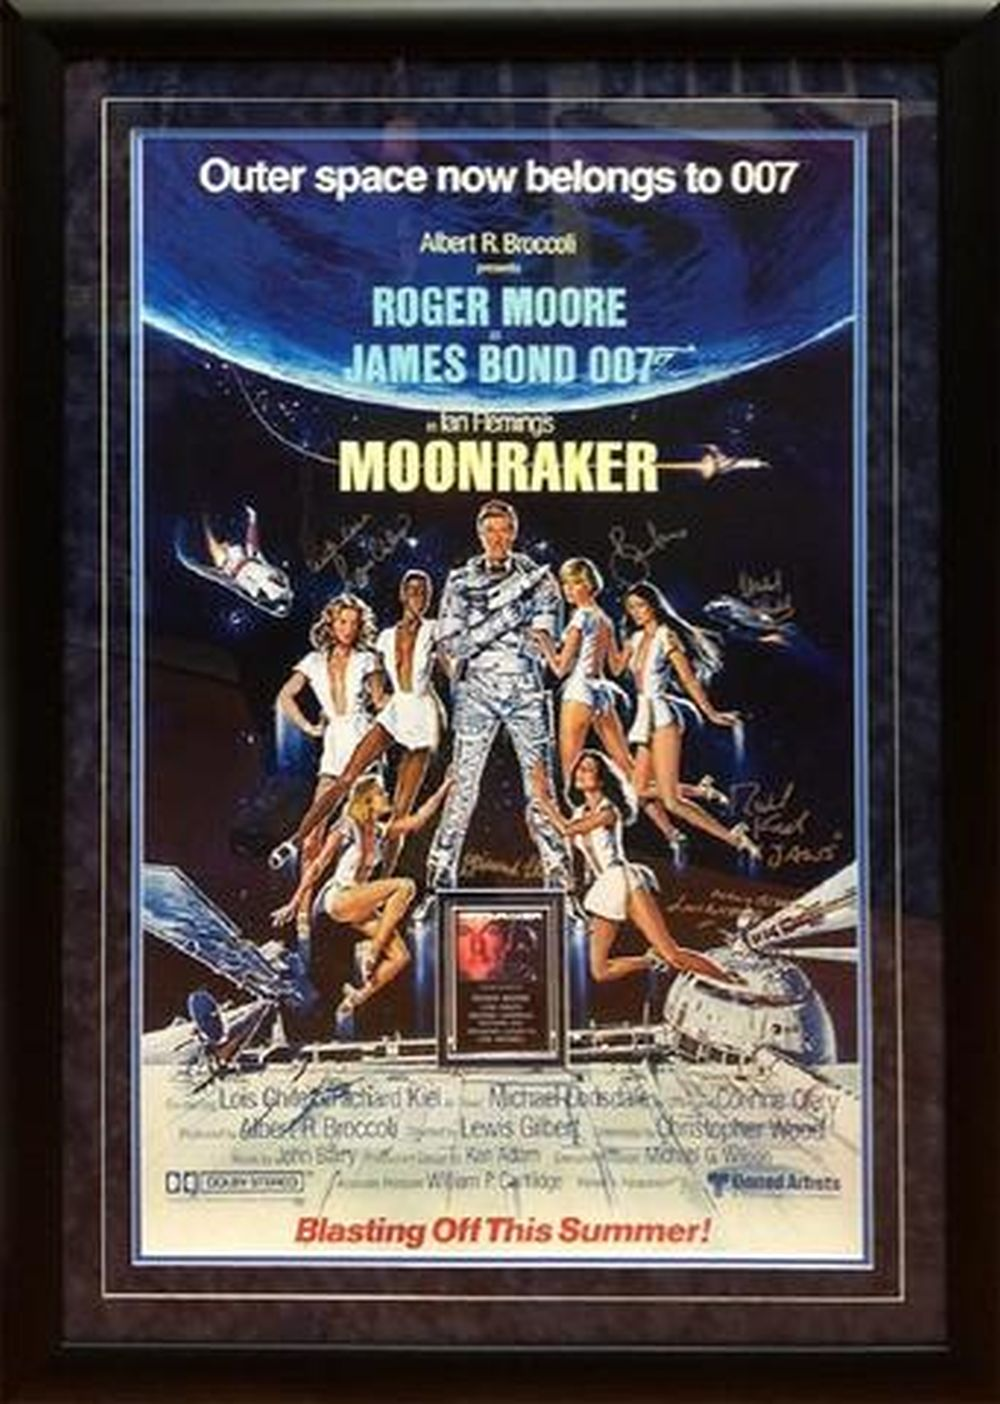 James Bond Moonraker - Signed Movie Poster